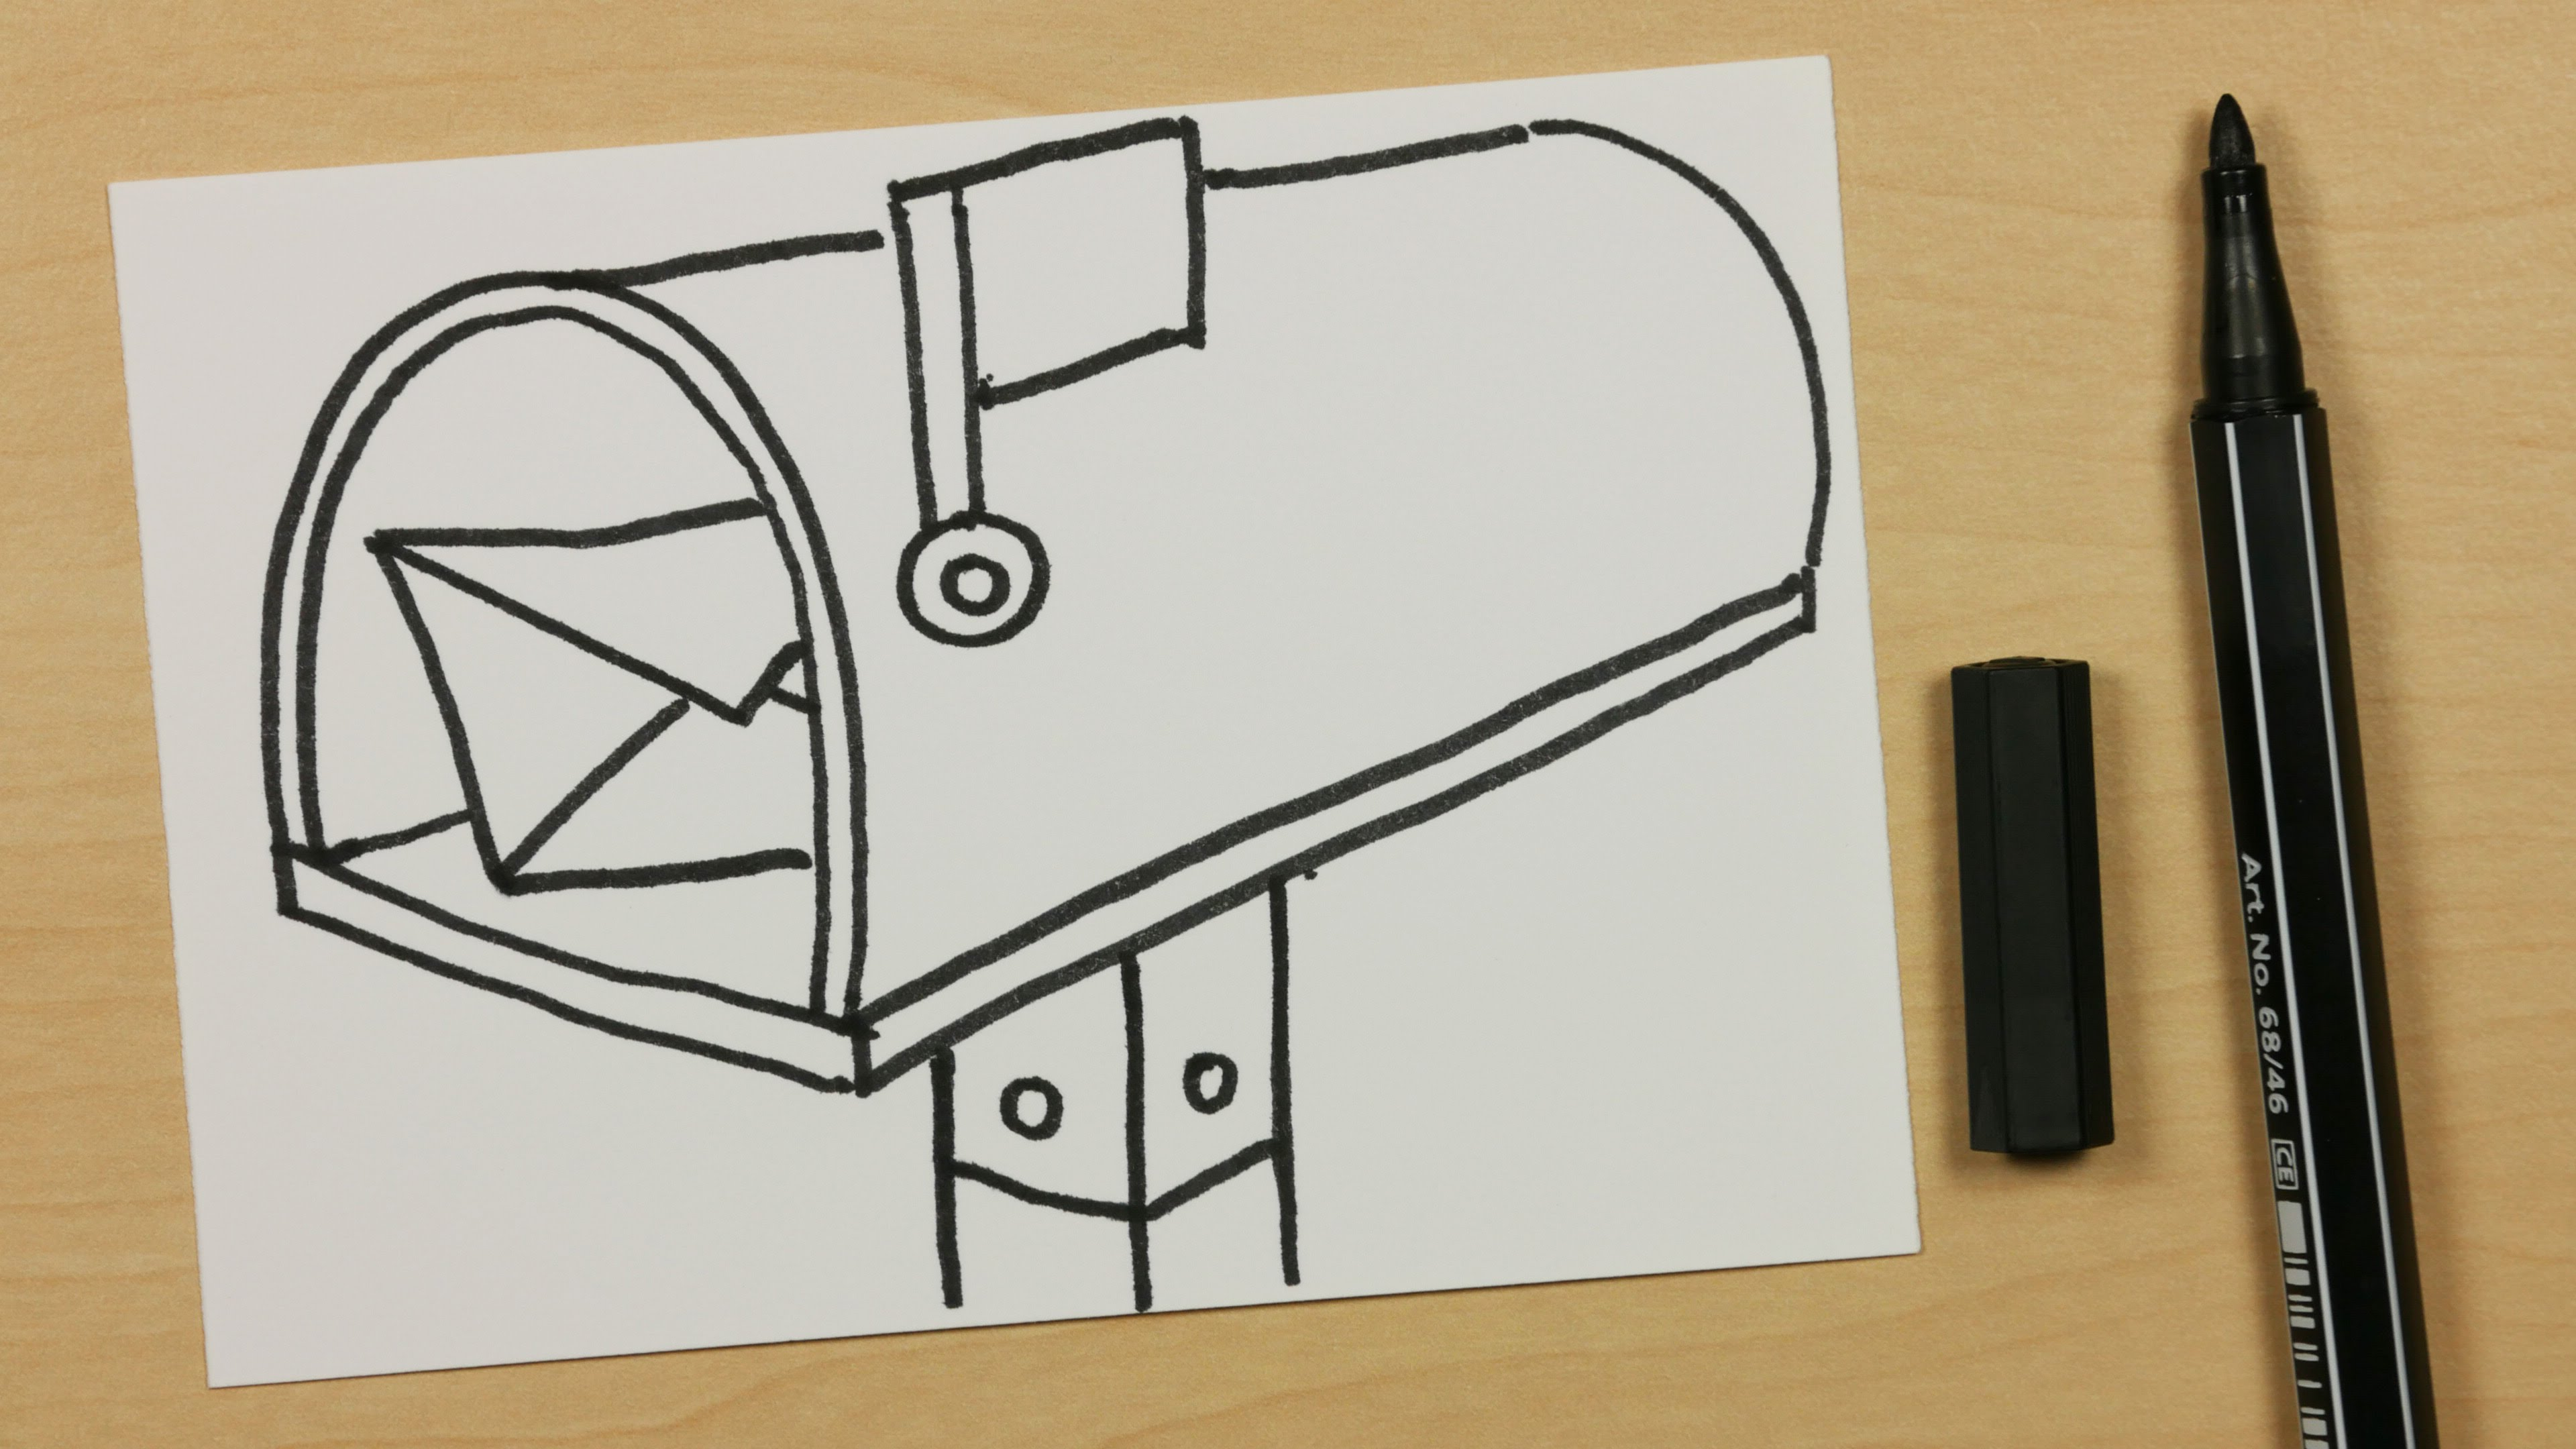 3840x2160 How To Draw A Mailbox, Postbox Or Letterbox